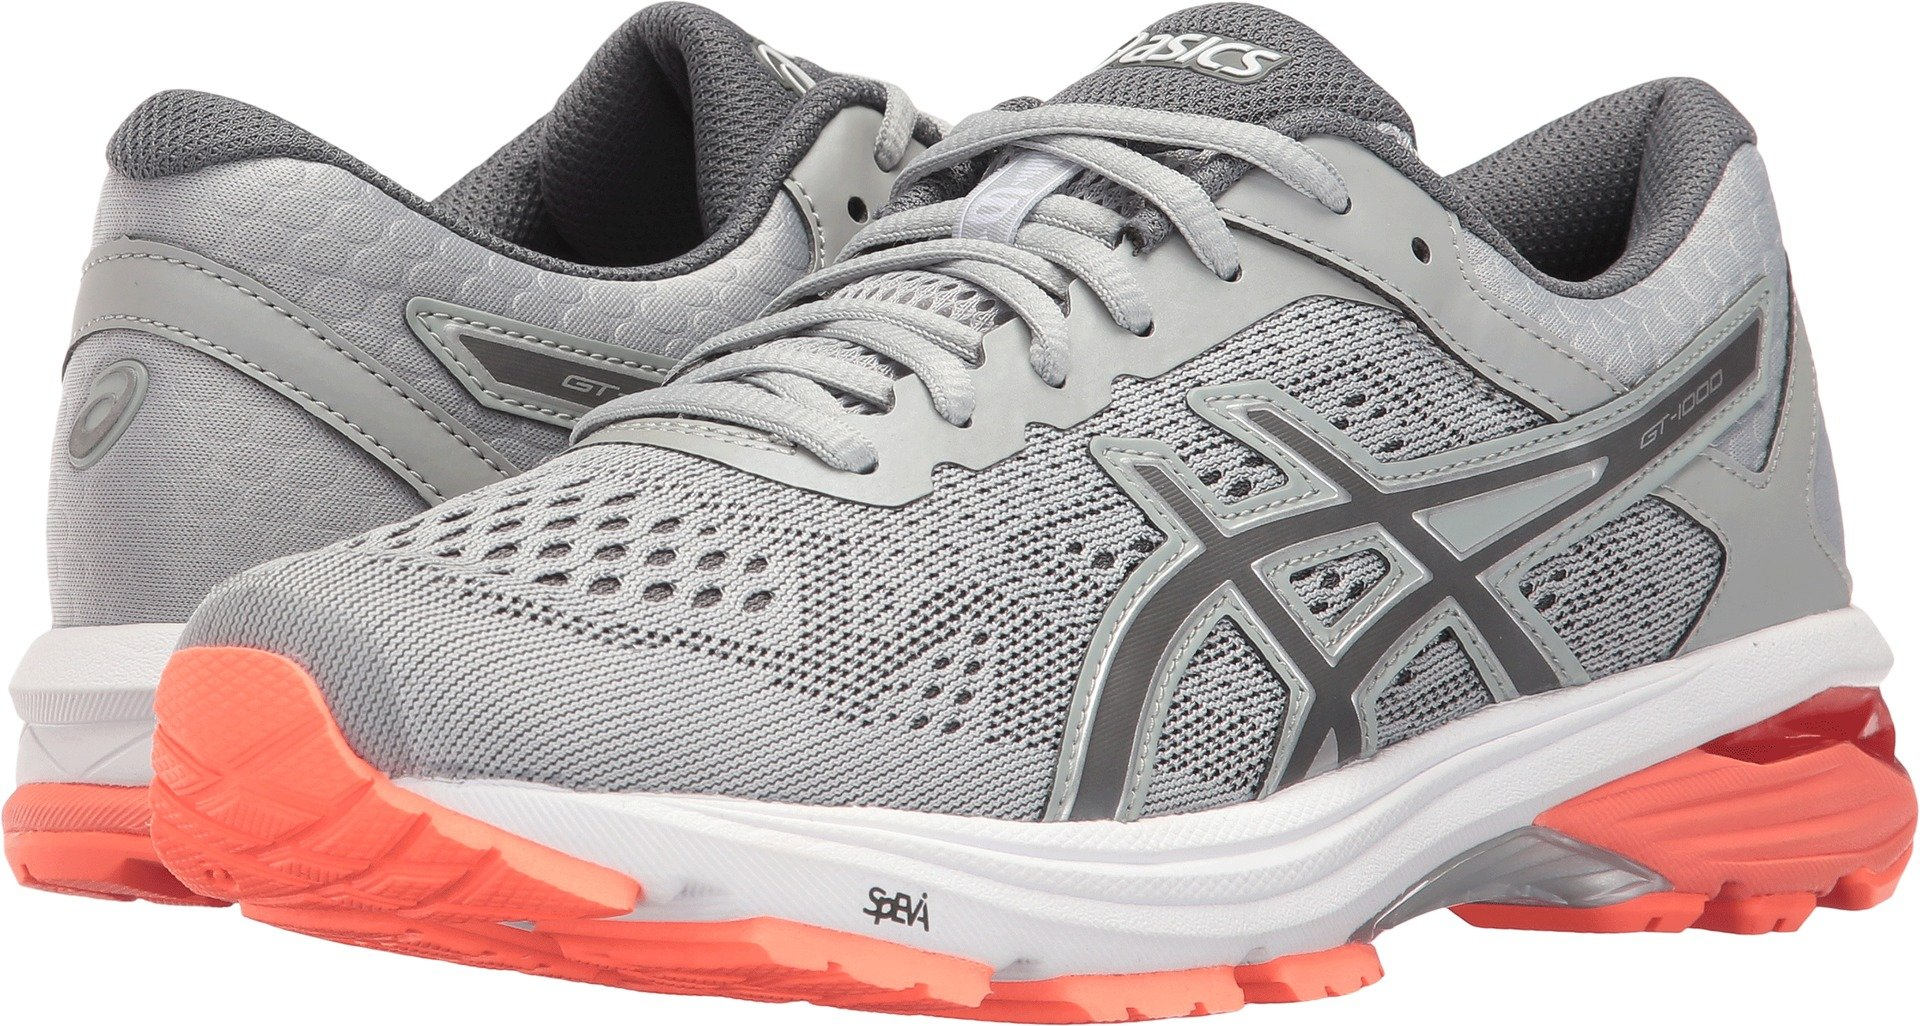 ASICS Womens GT-1000 6 Running Shoe, Mid Grey/Carbon/Flash Coral, 9 Medium US